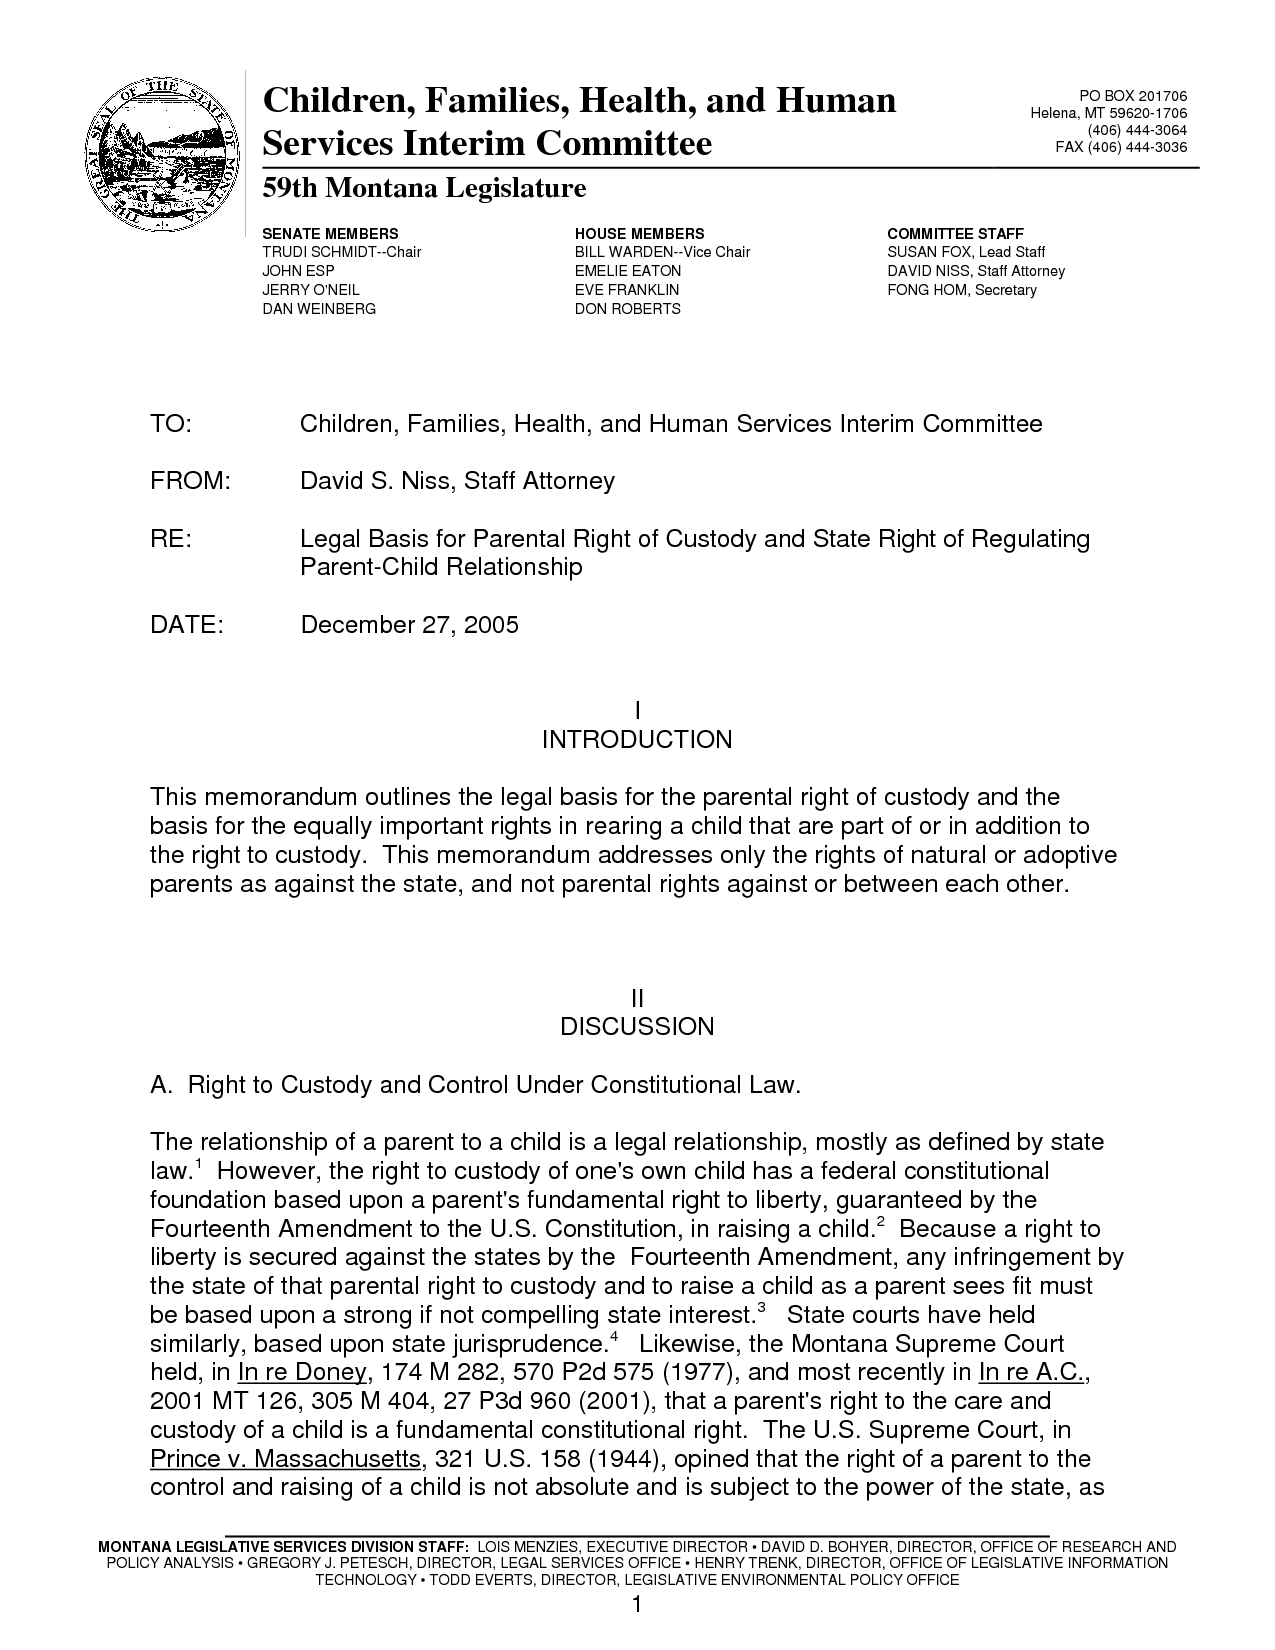 Legal Memo Format Example Memo format, Parental rights